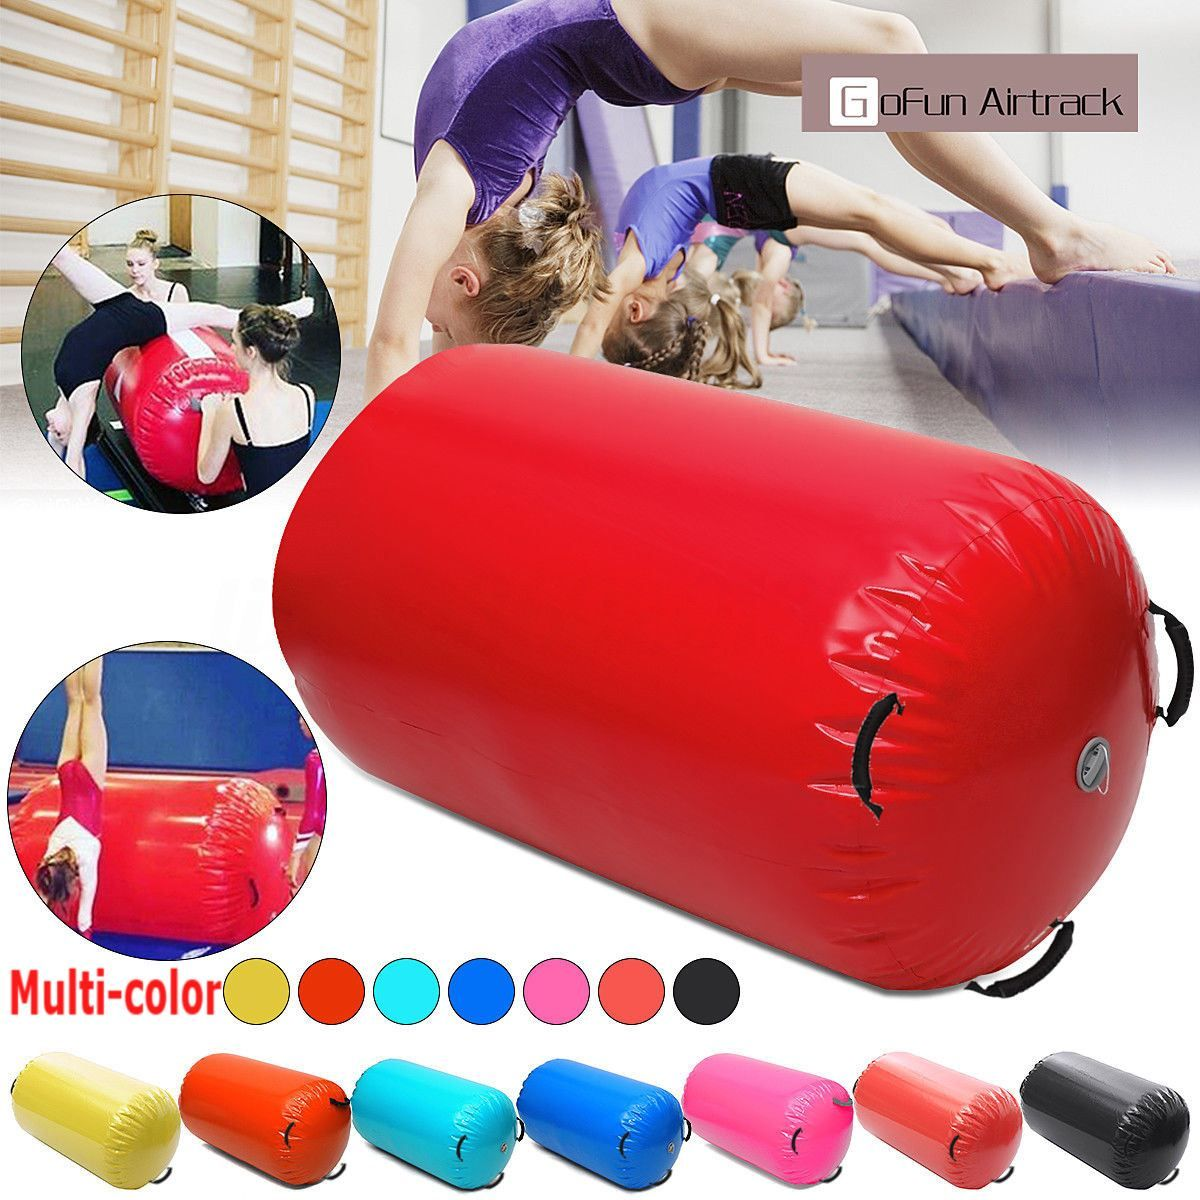 120x60CM Fitness Inflatable Air Roller Home Large Yoga Gymnastics Cylinder GYM Mat Beam HOT